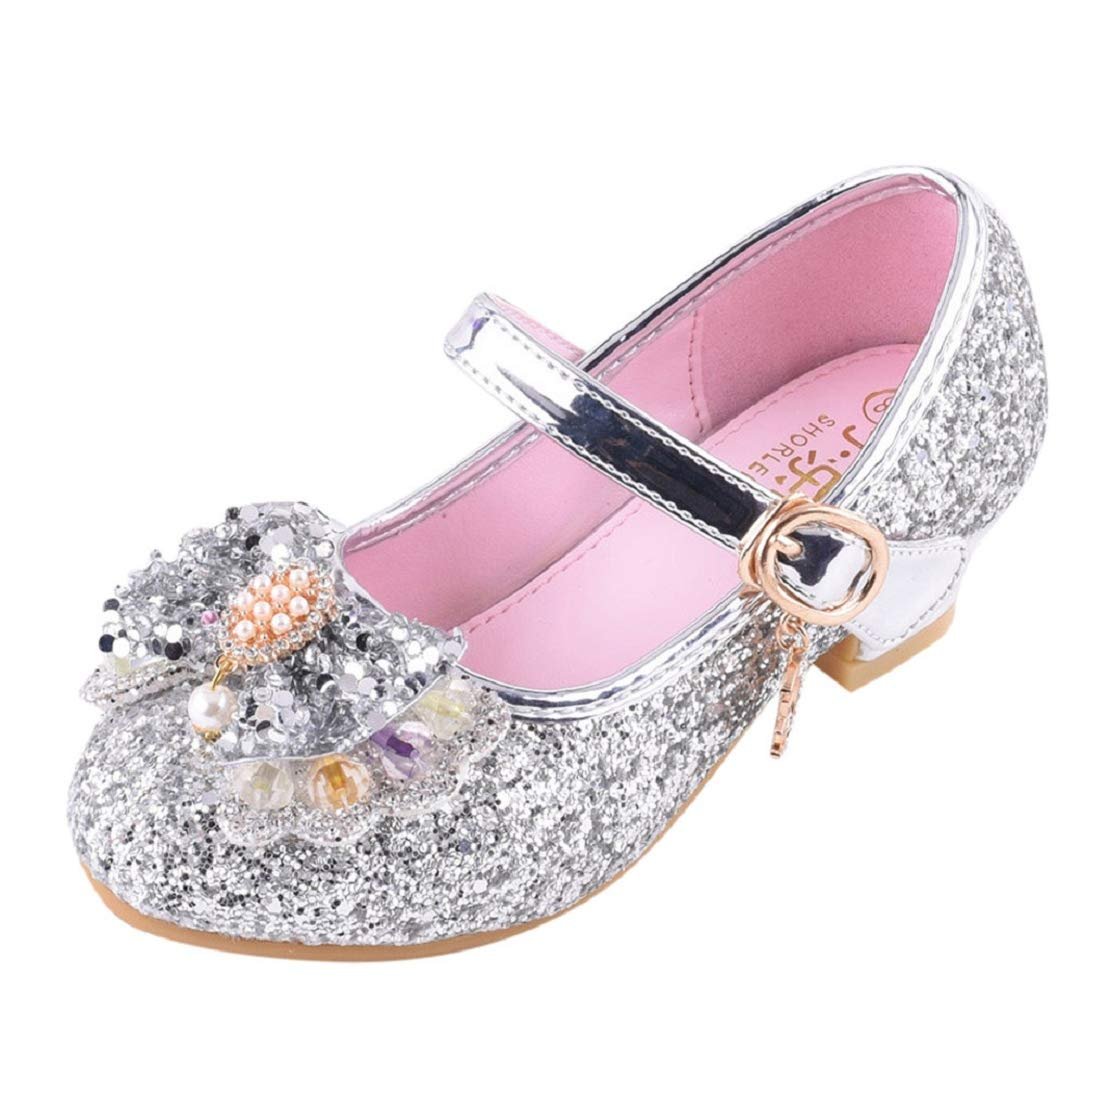 Toddler Kids Girl Mary Jane Flat Glitter BalletShoes Heeled Princess Shoes Wedding Party Dress Pumps (3.5-14Y) by Lowprofile Silver